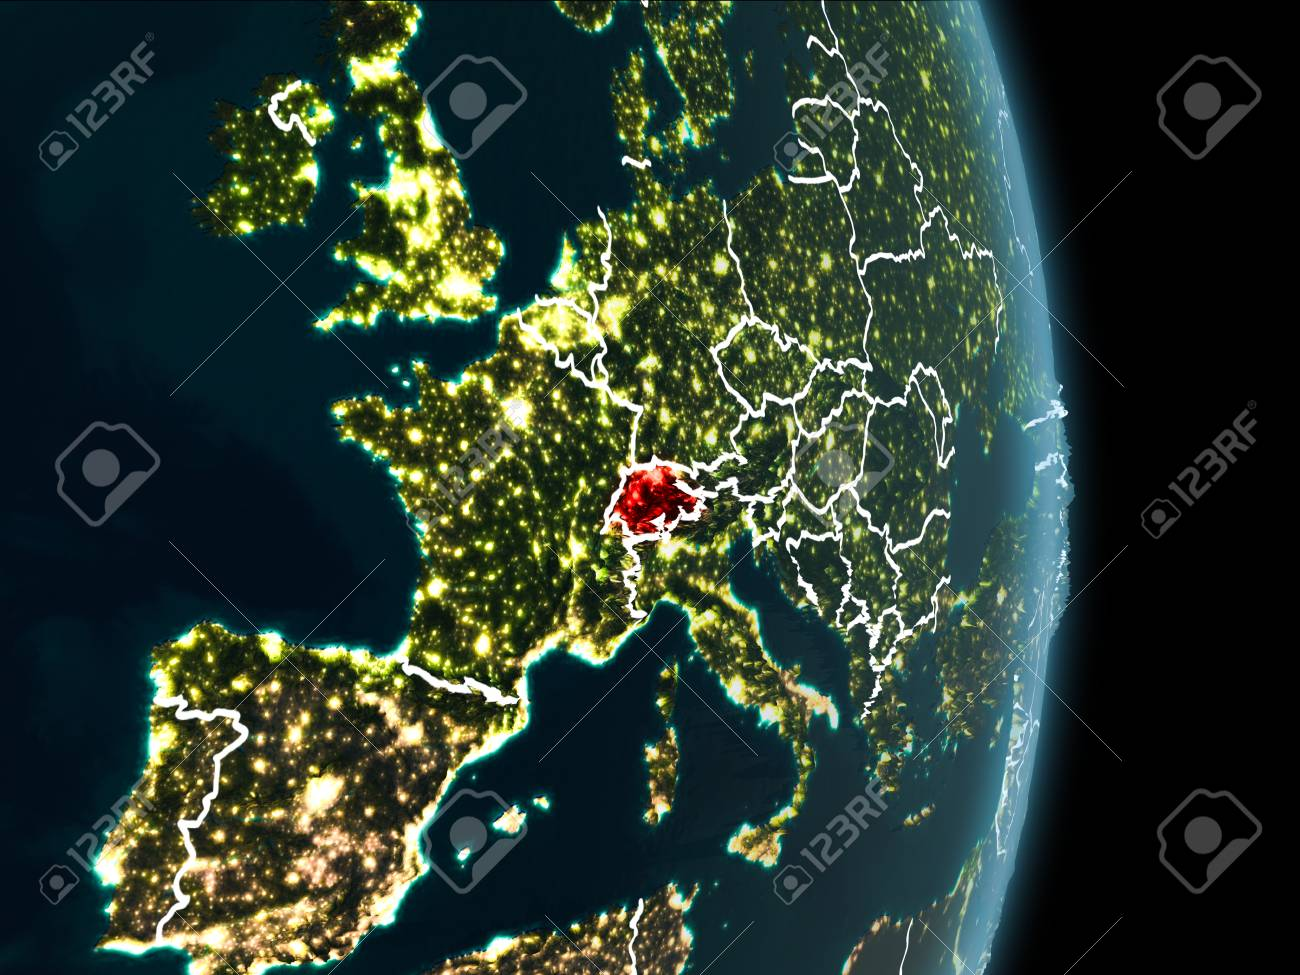 Map of switzerland in red as seen from space on planet earth stock illustration map of switzerland in red as seen from space on planet earth at night with white borderlines and city lights 3d illustration gumiabroncs Gallery